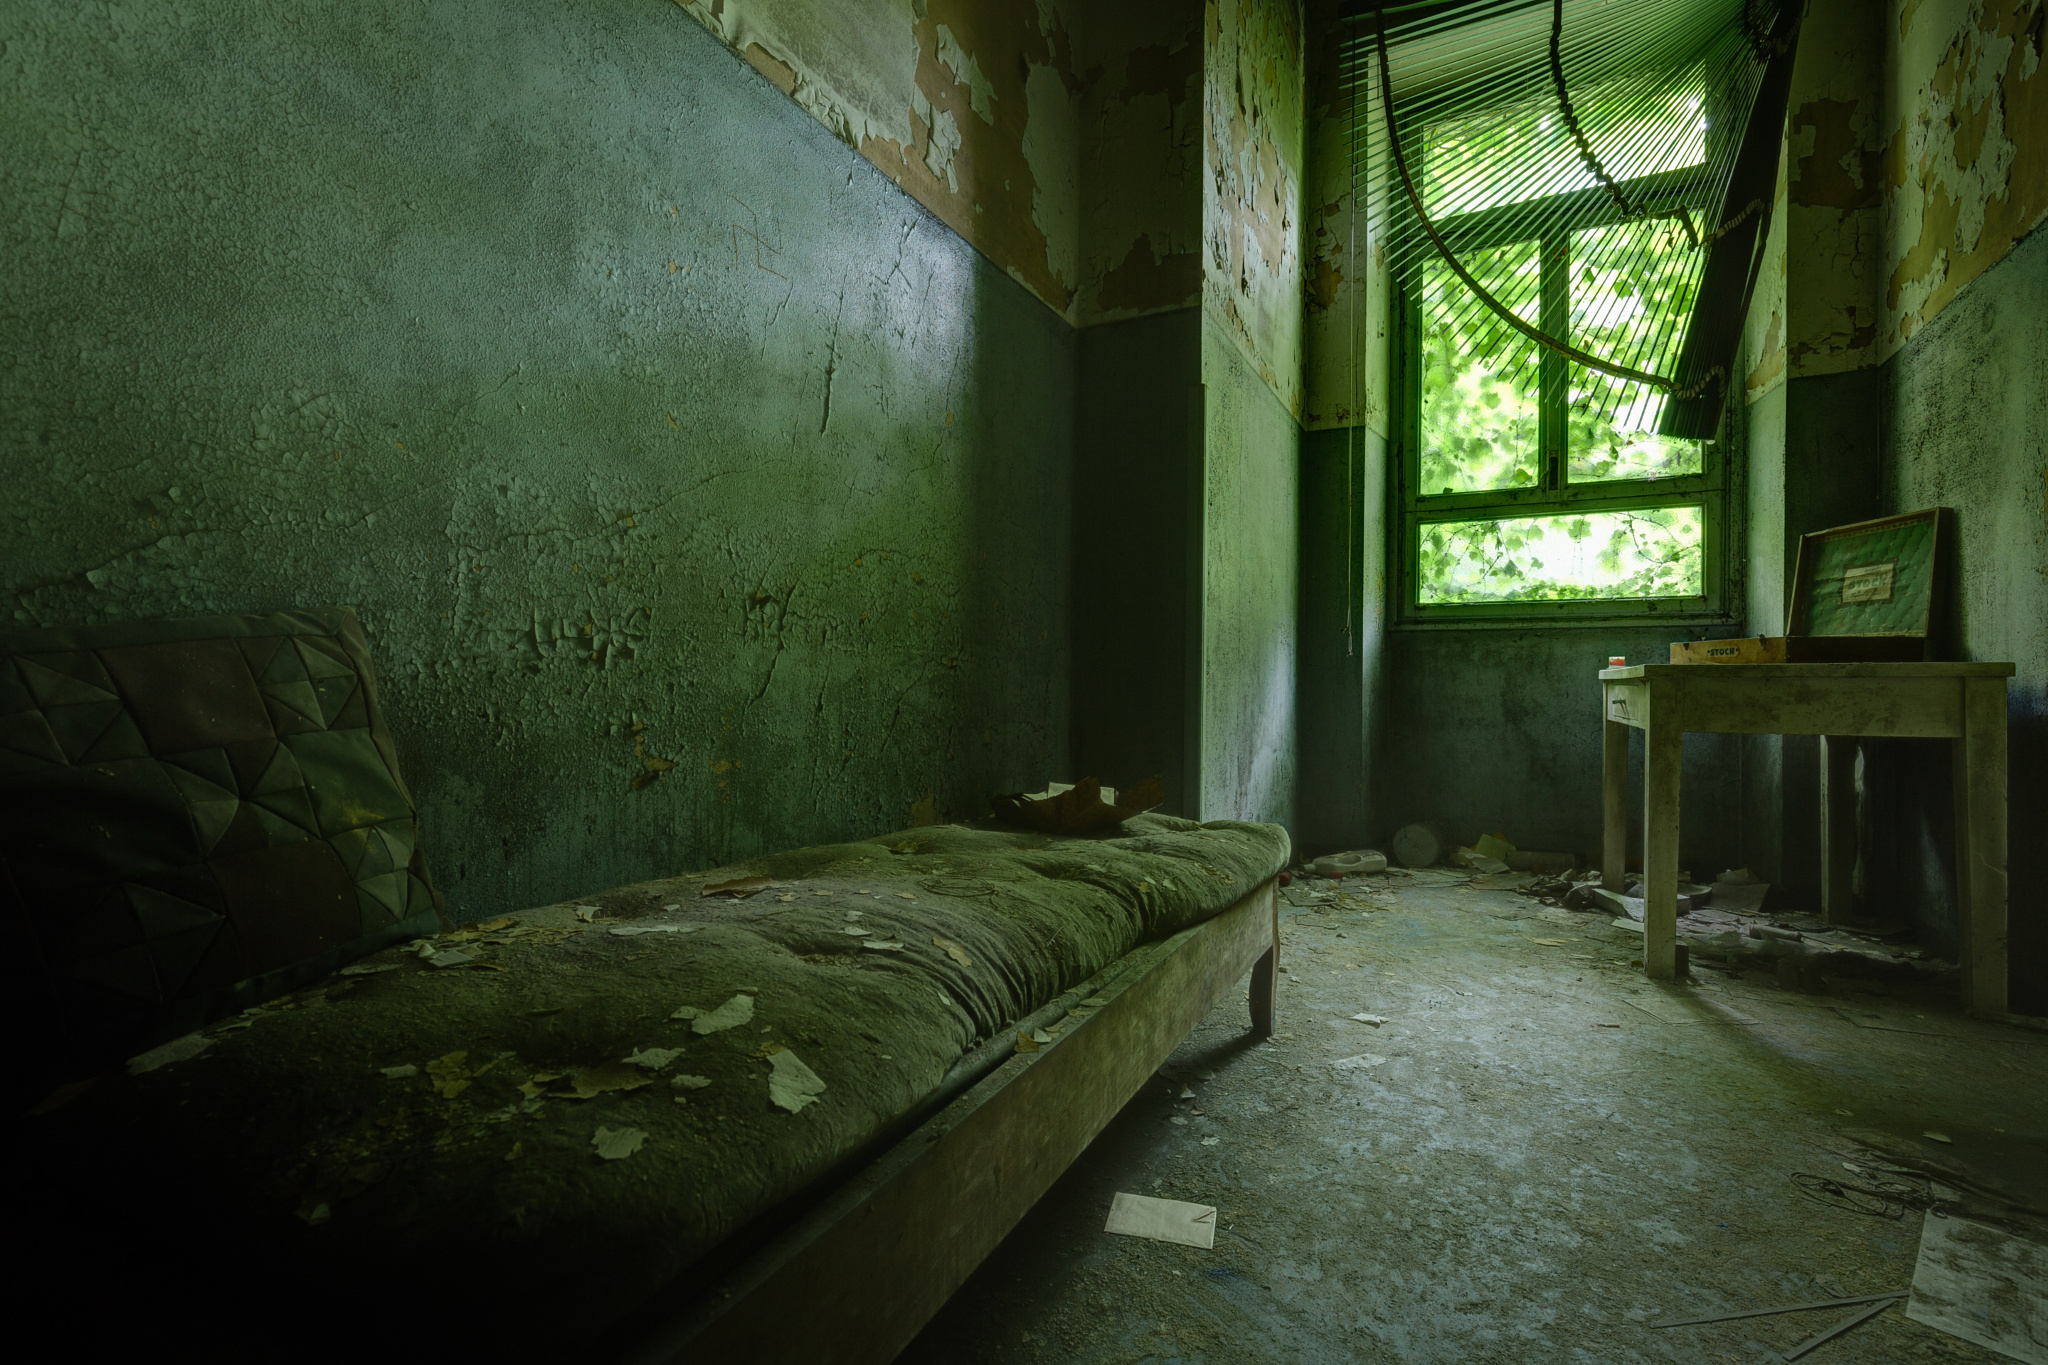 Abandoned psychiatric hospital 05